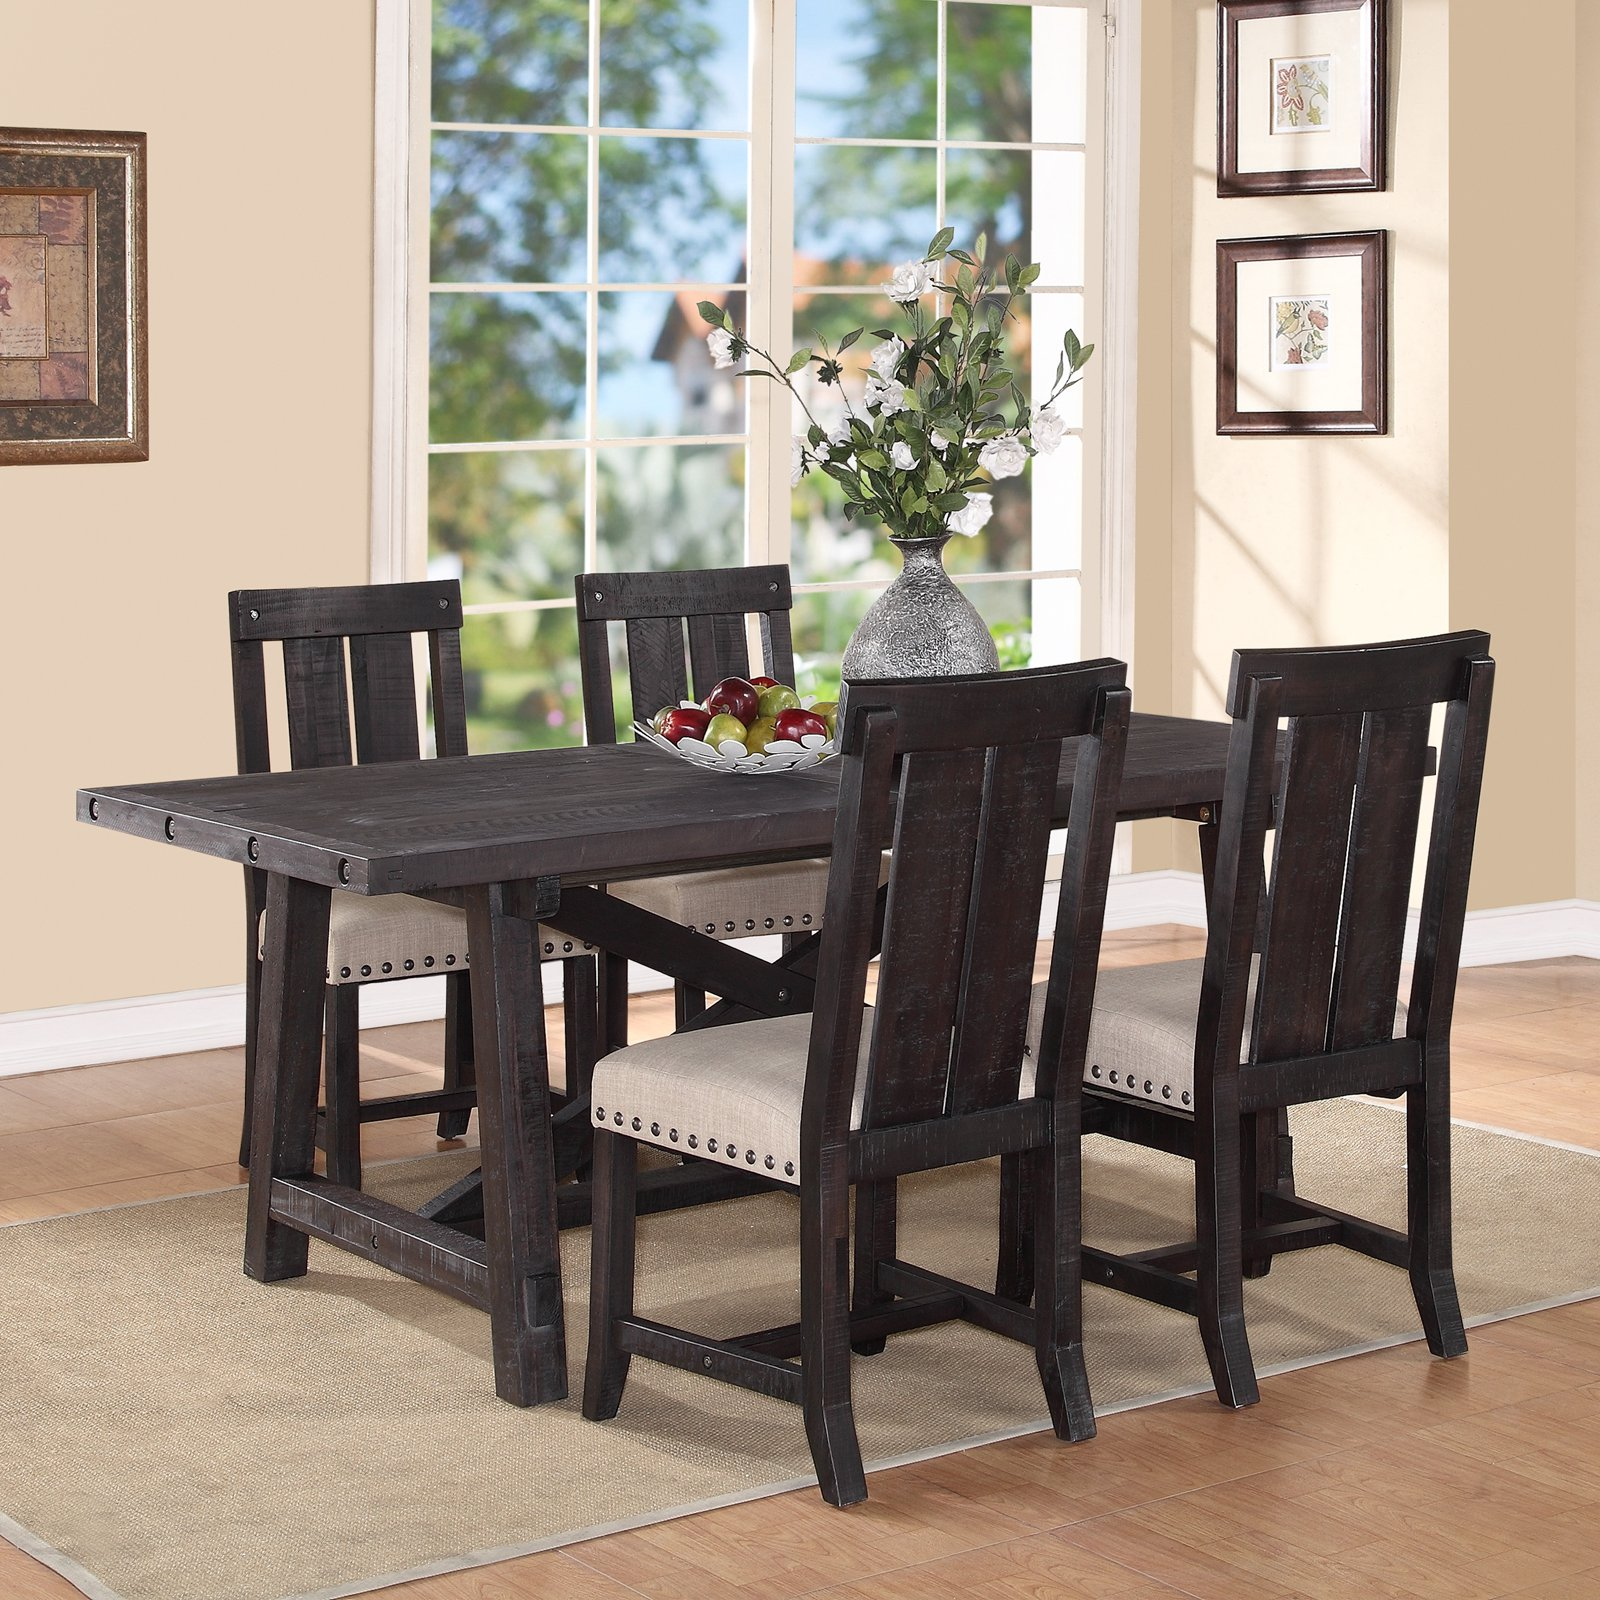 Rectangle Dining Room Tables Modus Yosemite 5 Piece Rectangular Dining Table Set With Wood